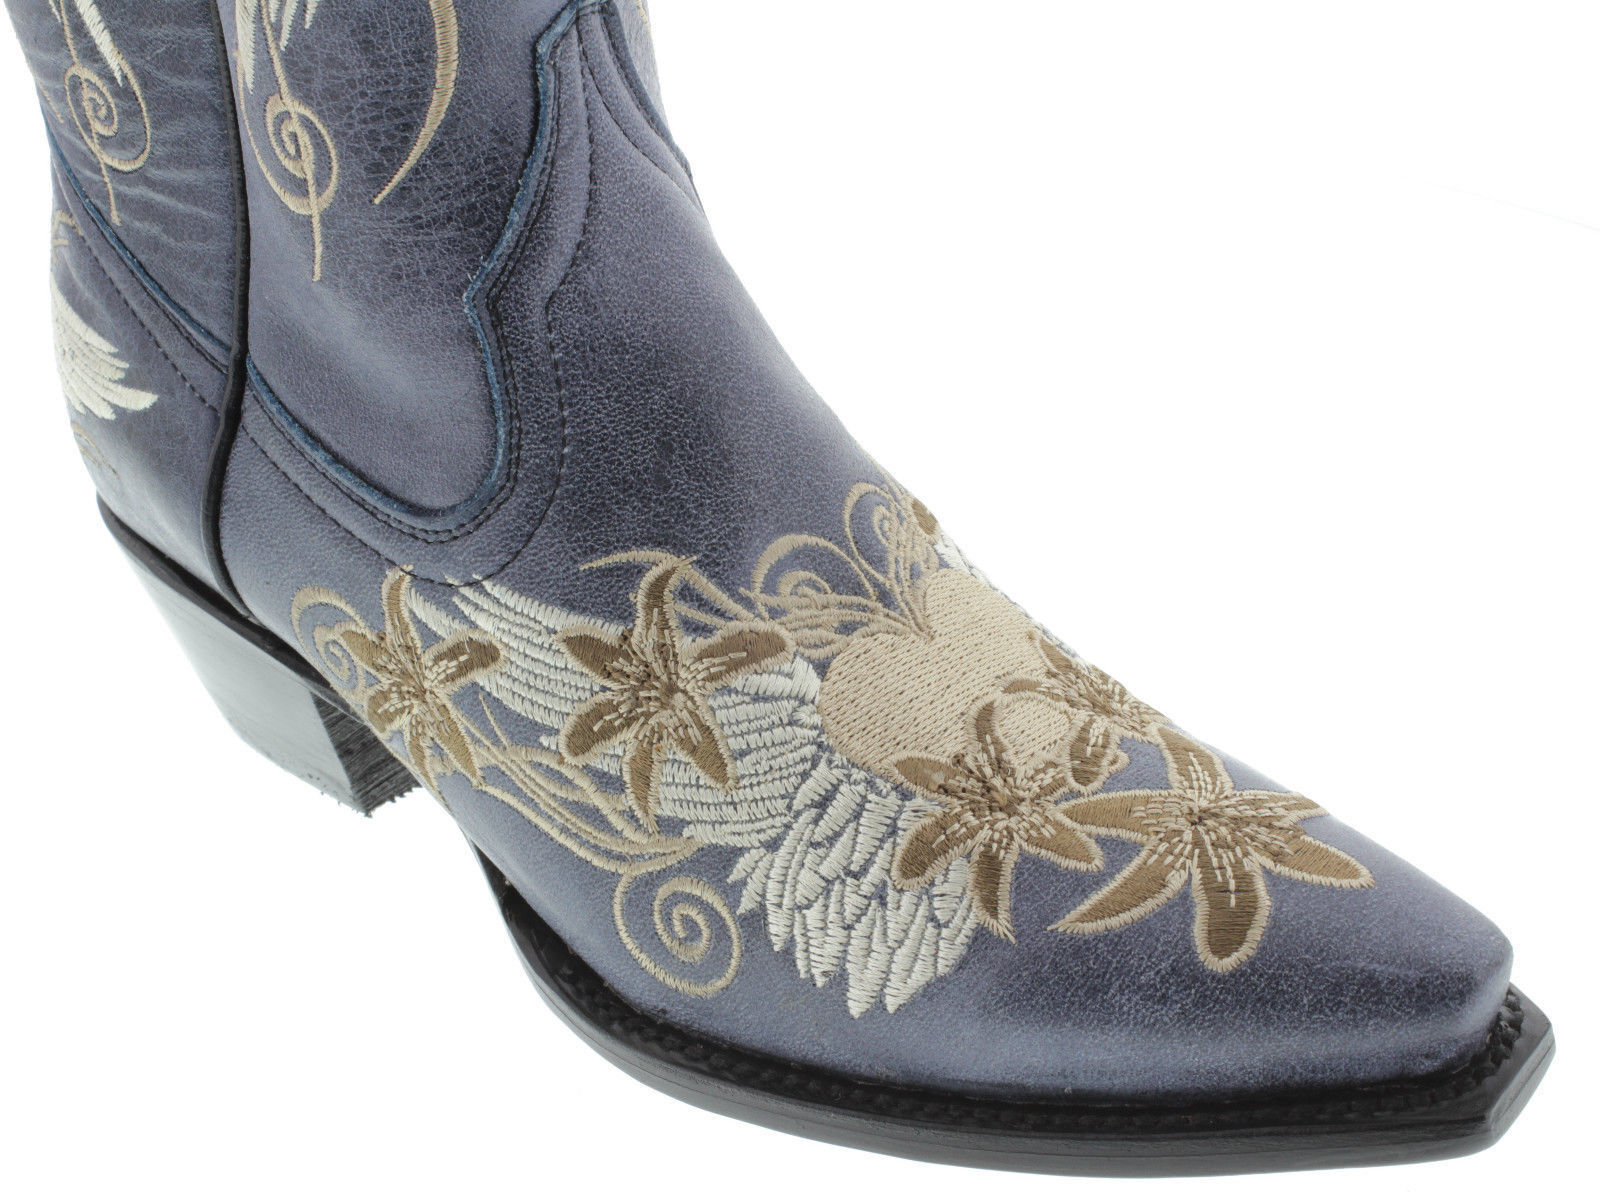 Women's Denim bluee Heart Wings Embroidery Leather Cowgirl Leather Leather Leather Boots Pointed 926128